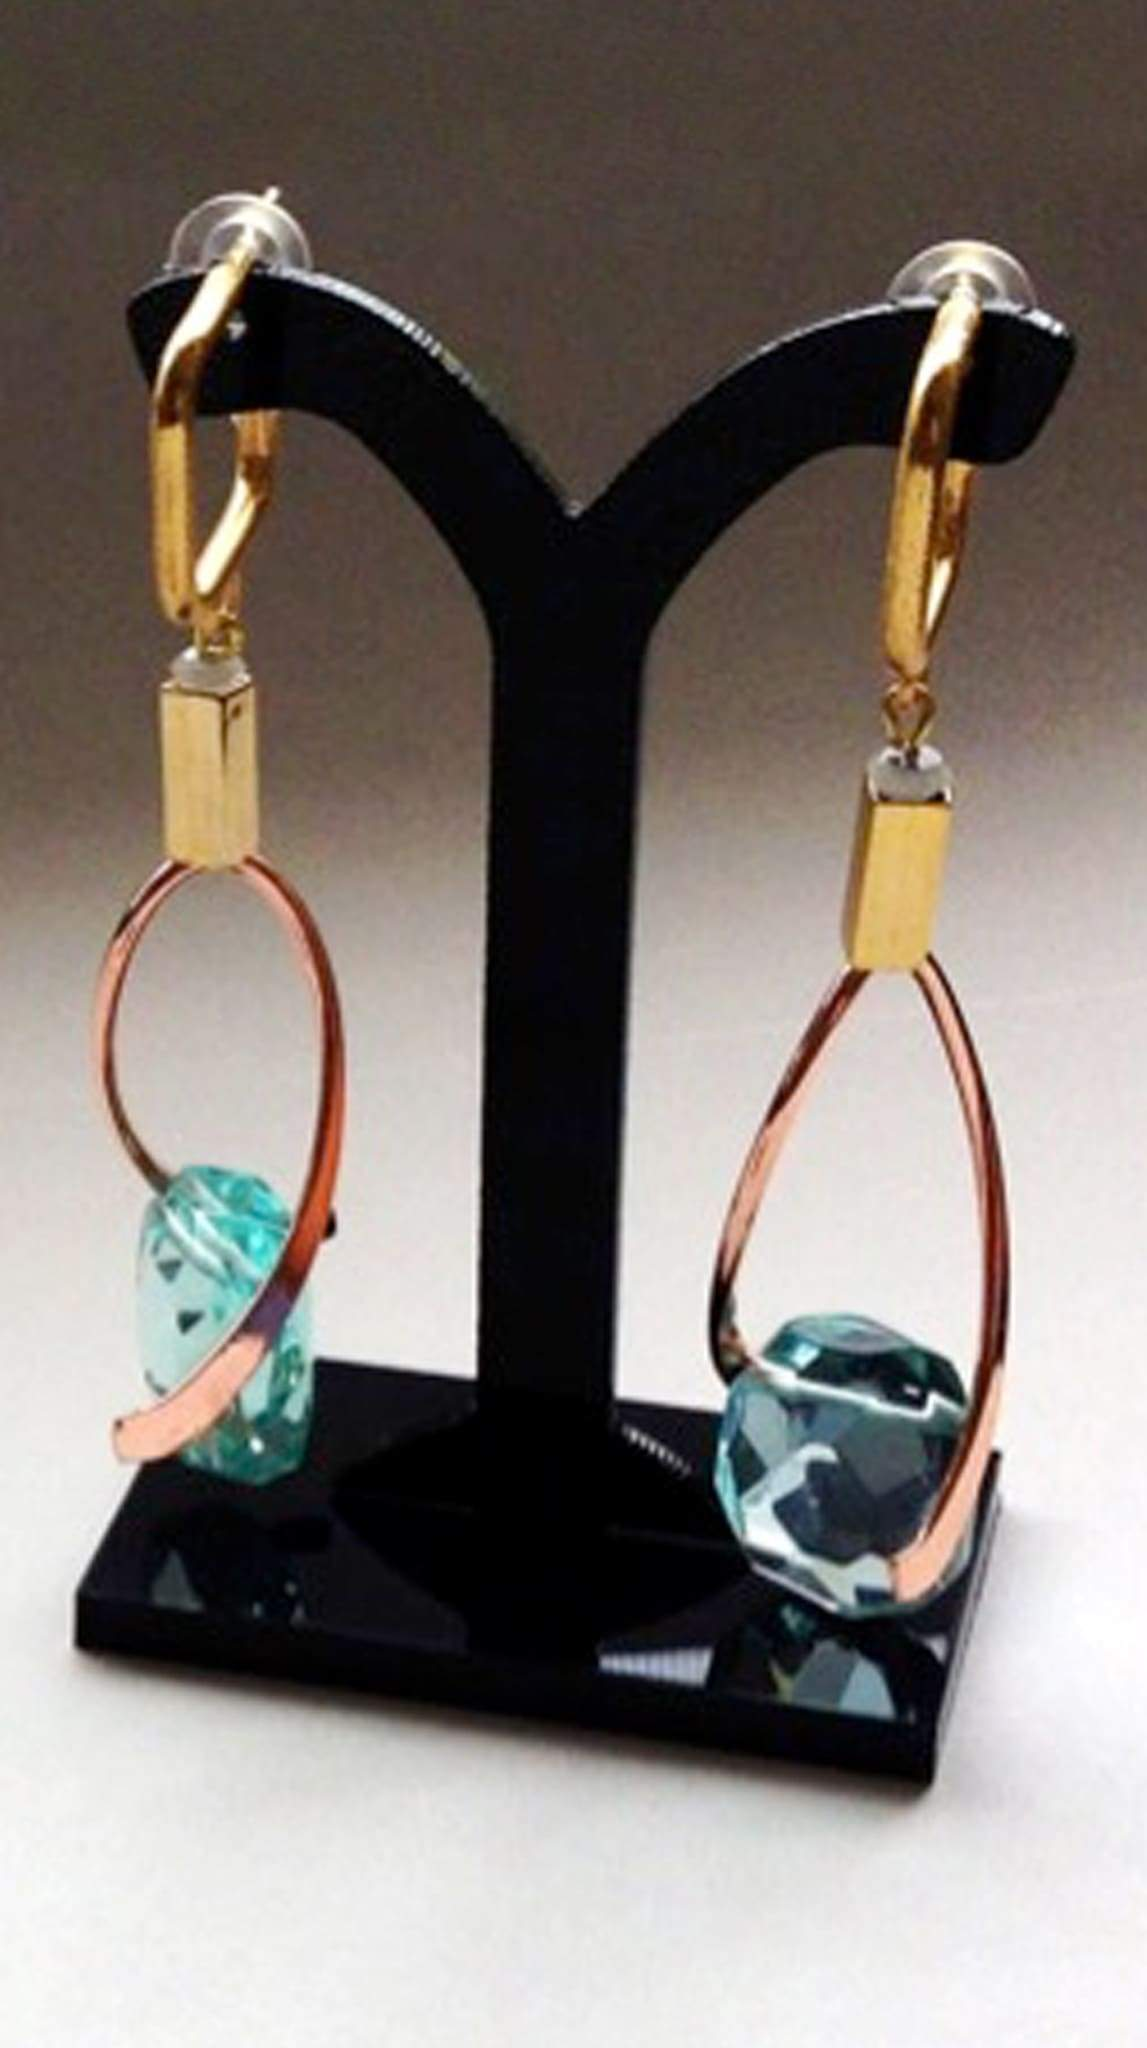 Gala Earrings in Aquamarine by Ruby Dávila-Rendón Jewelry Made in Puerto Rico | Nineteenth Amendment